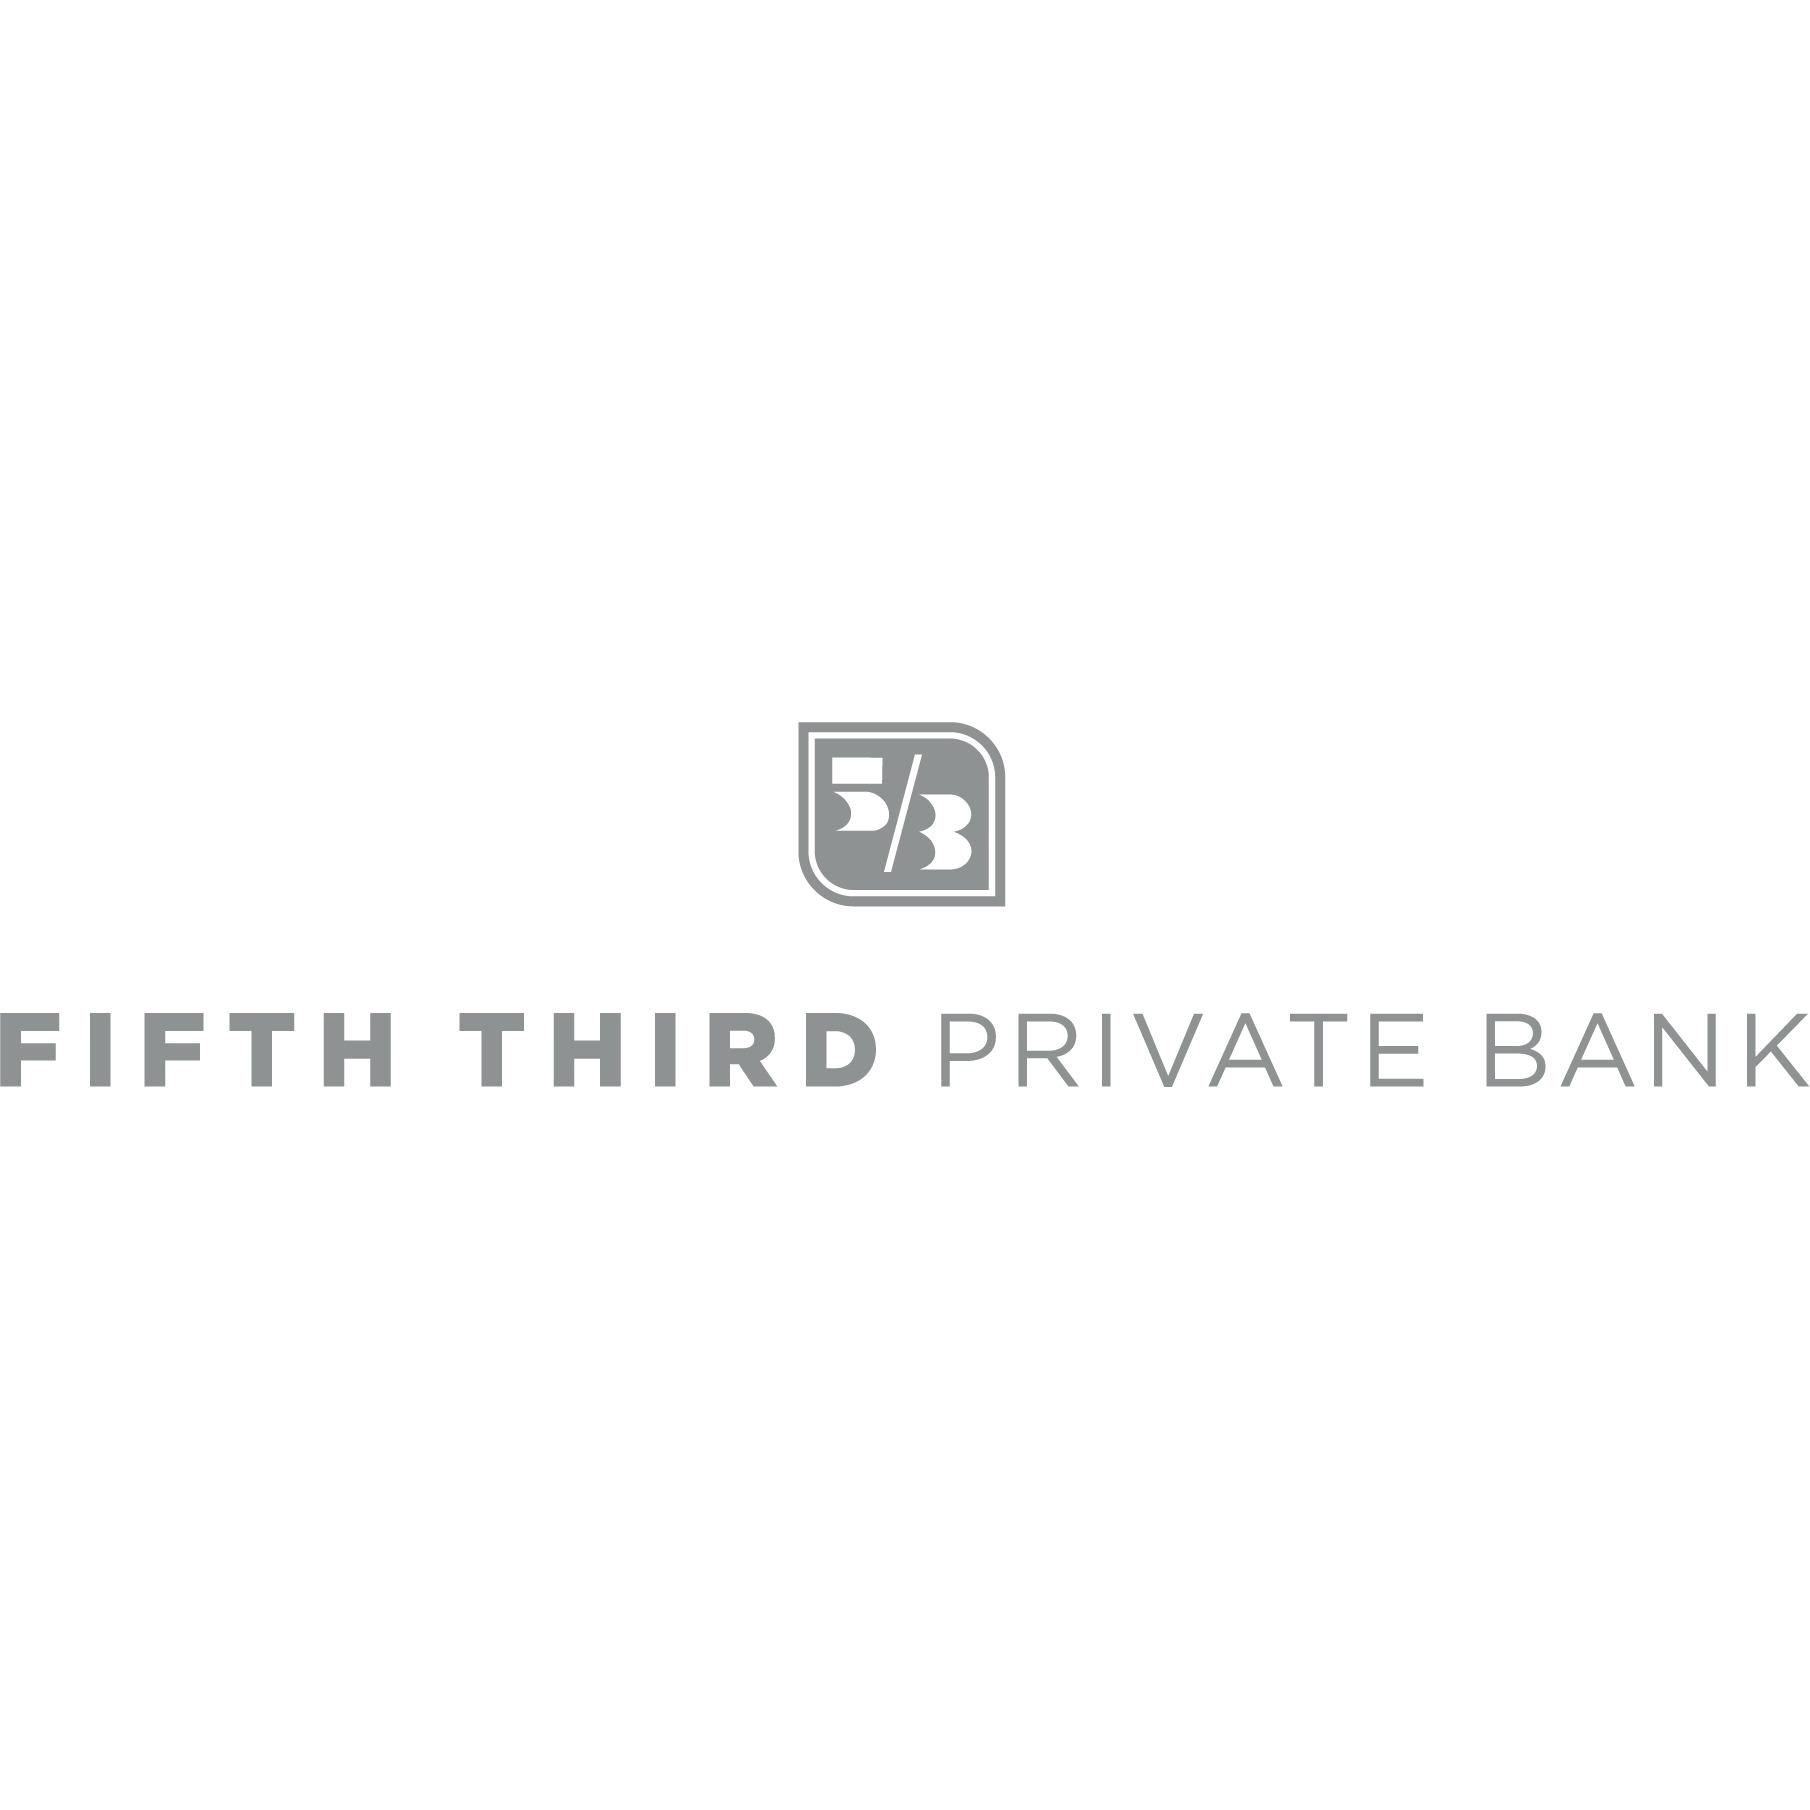 Fifth Third Private Bank - Cynthia Lammert